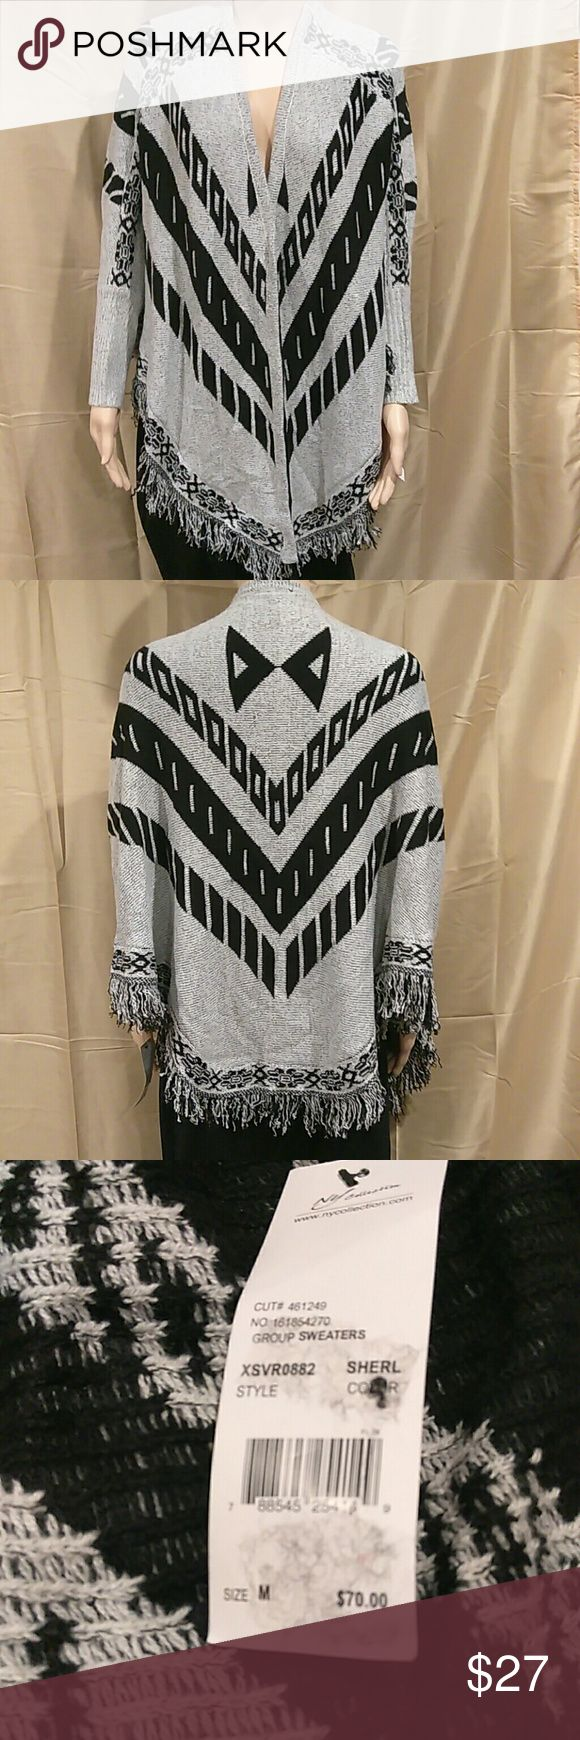 NY Collection Tie front Aztec Cardigan New with tags, price is negotiable. Tie front Aztec cardigan with fringe hem. Material is 90% acrylic and 10% polyester. NY Collection Sweaters Shrugs & Ponchos